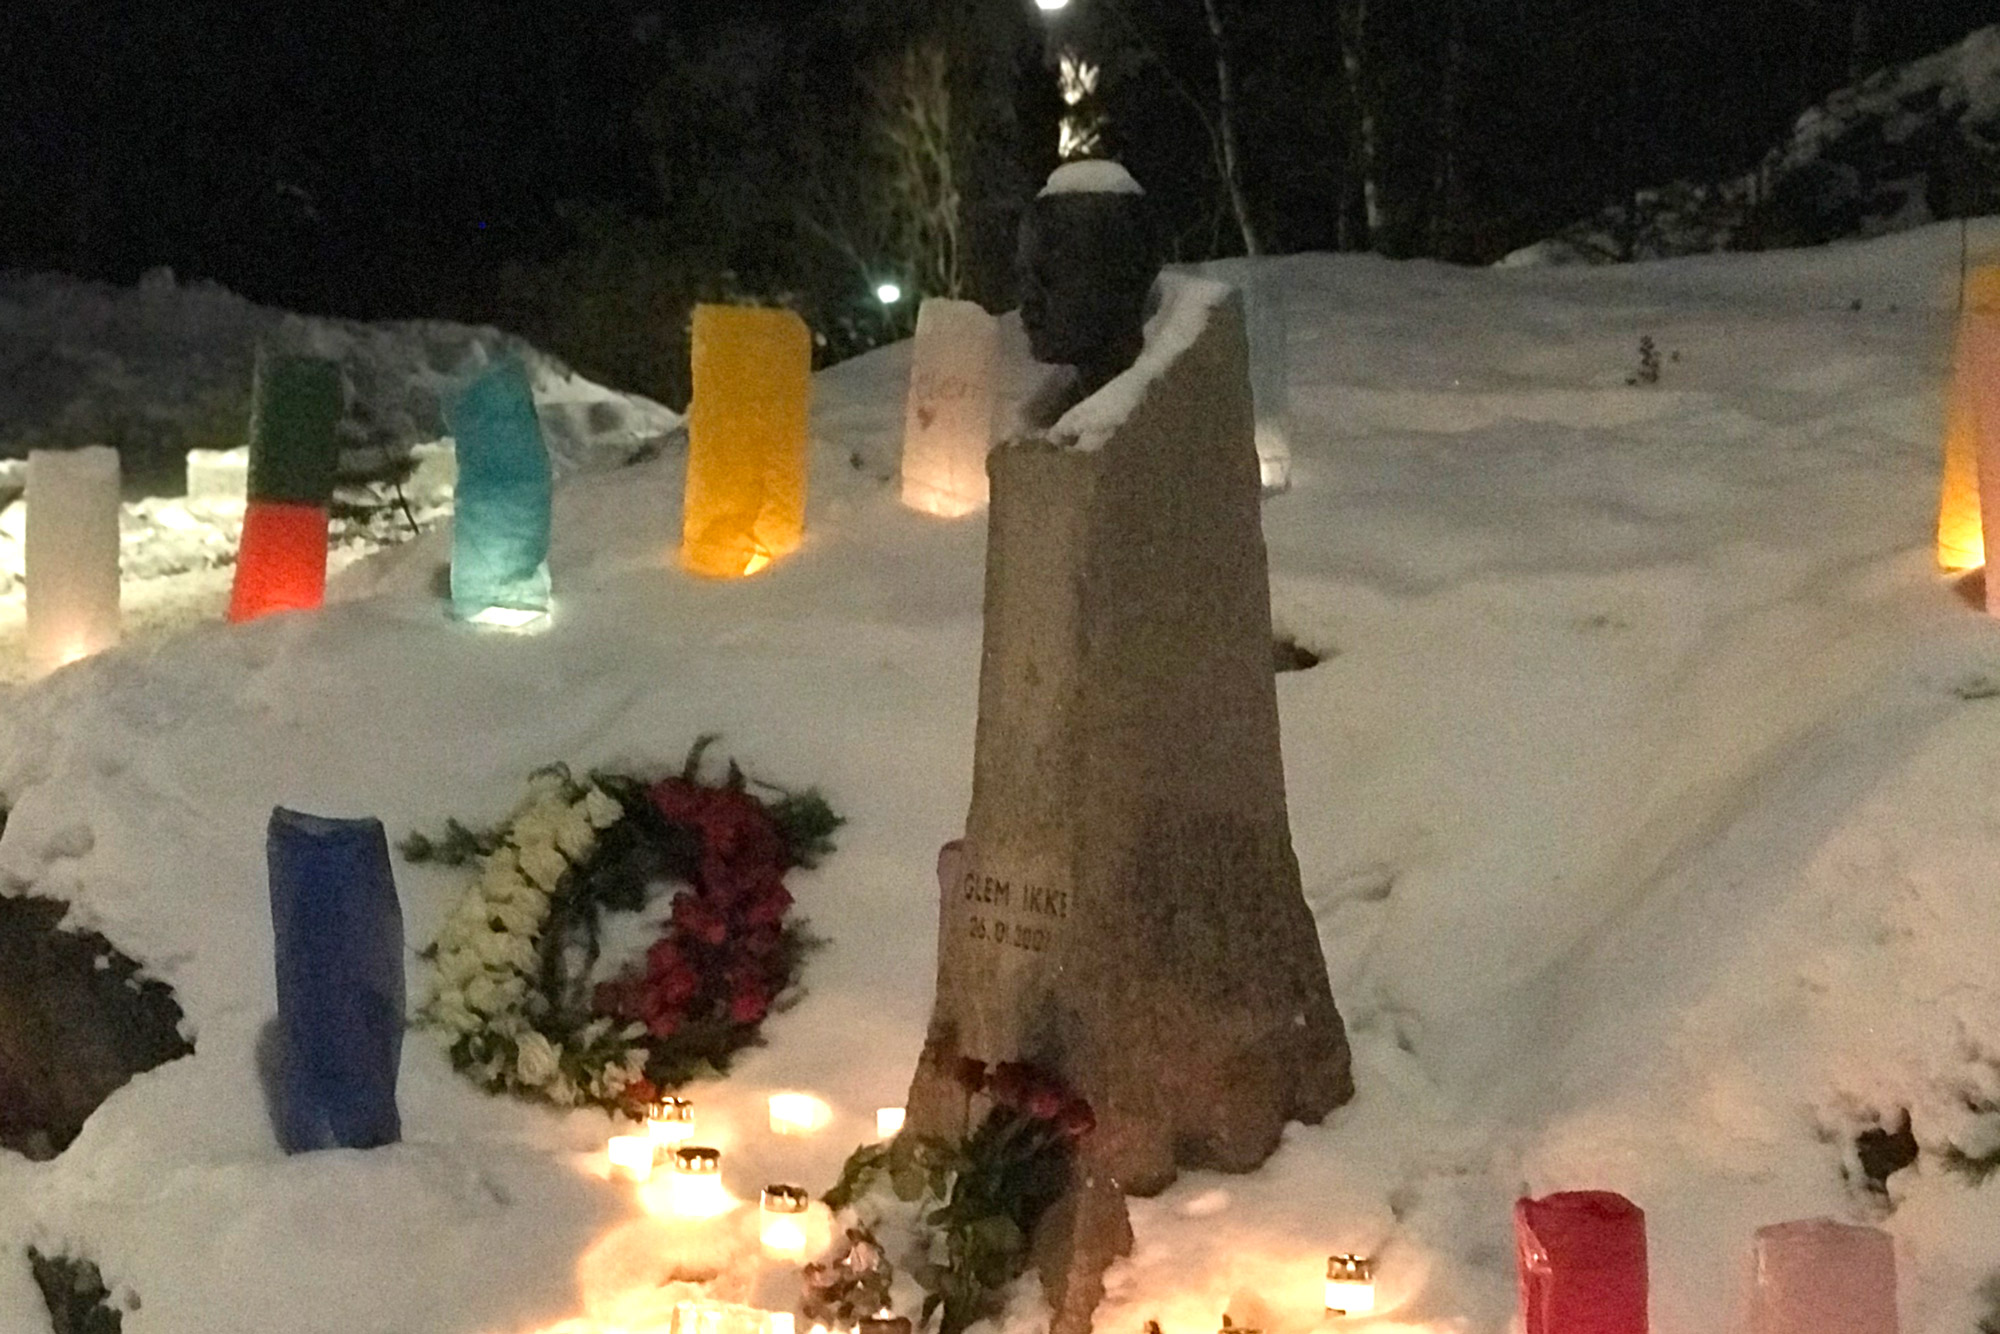 26 January 2018: Benjamin Hermansen's memorial statue in Holmlia, a suburb in eastern Oslo, Norway. (Photograph by Sindre Bangsta)